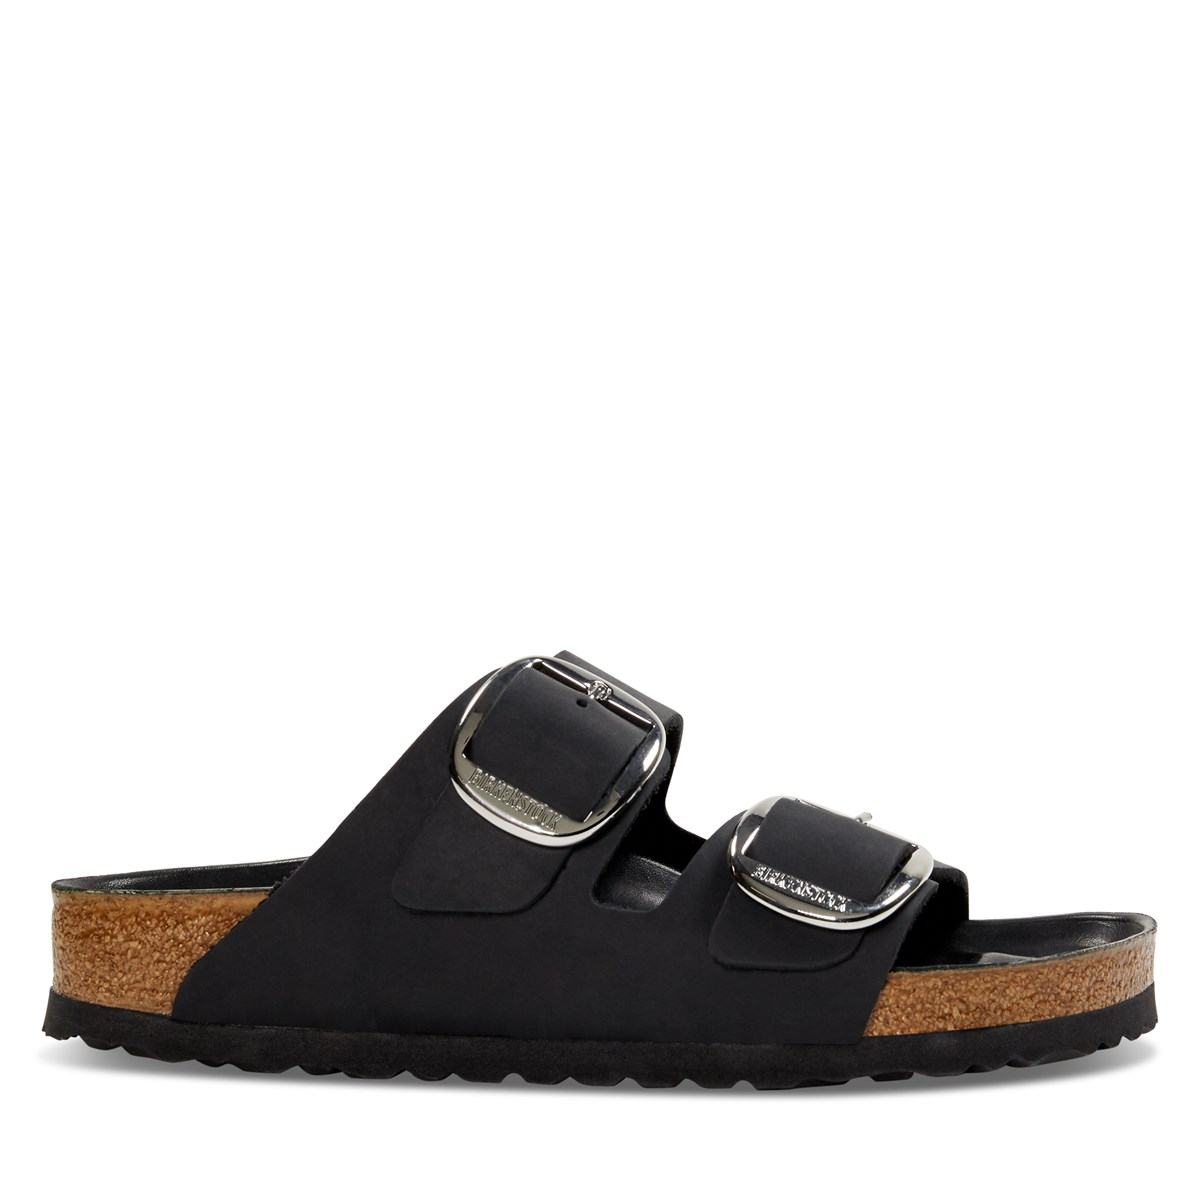 Women's Arizona Big Buckle Sandal in Black